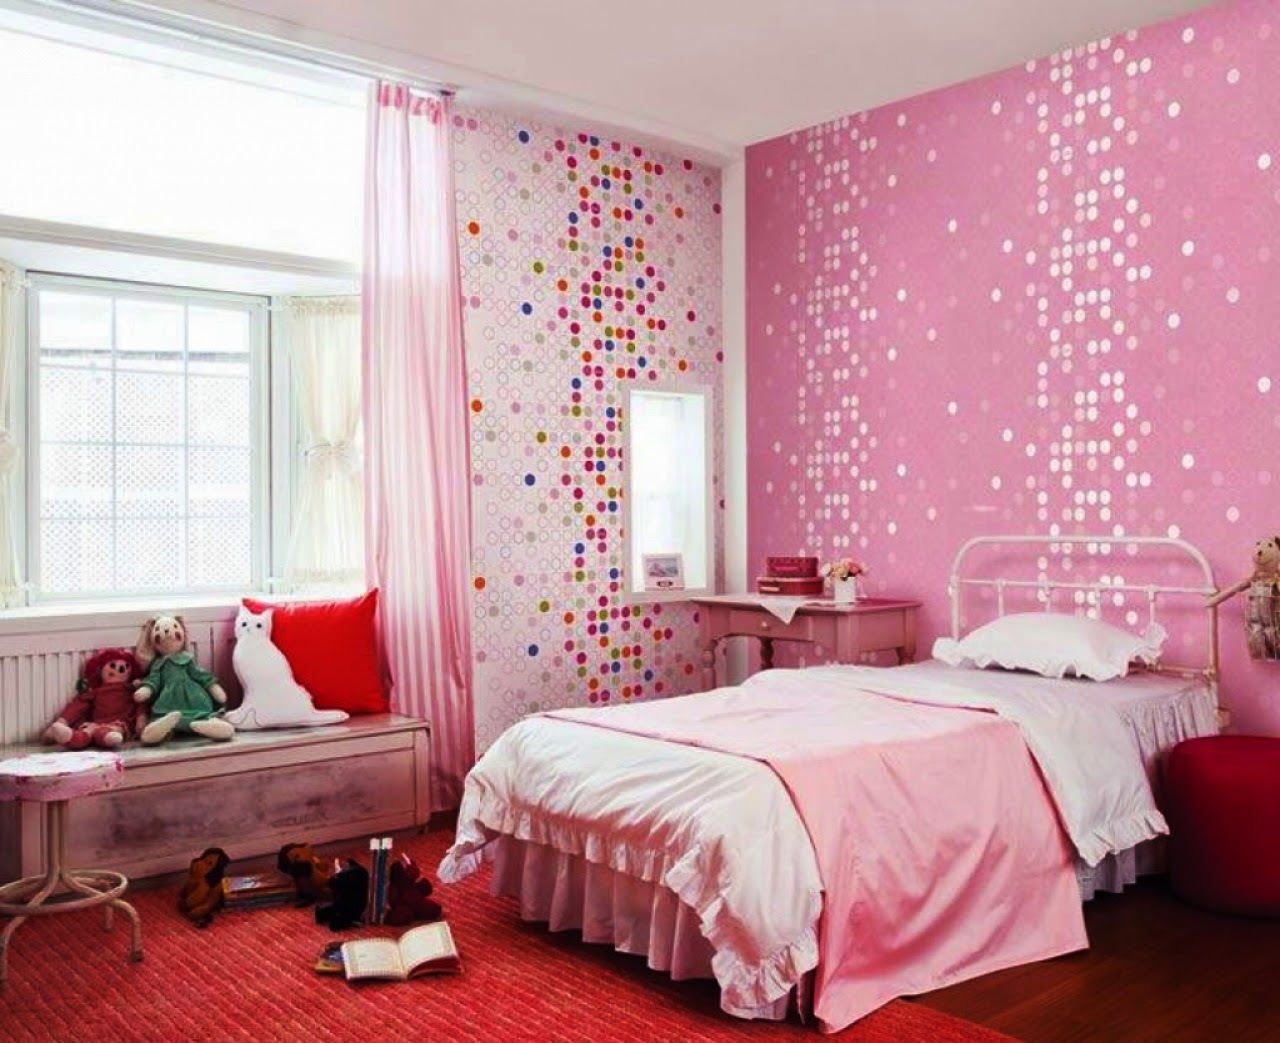 A Room For Everyone & Perfect Girls Room Design and Decor Ideas - A Room For Everyone